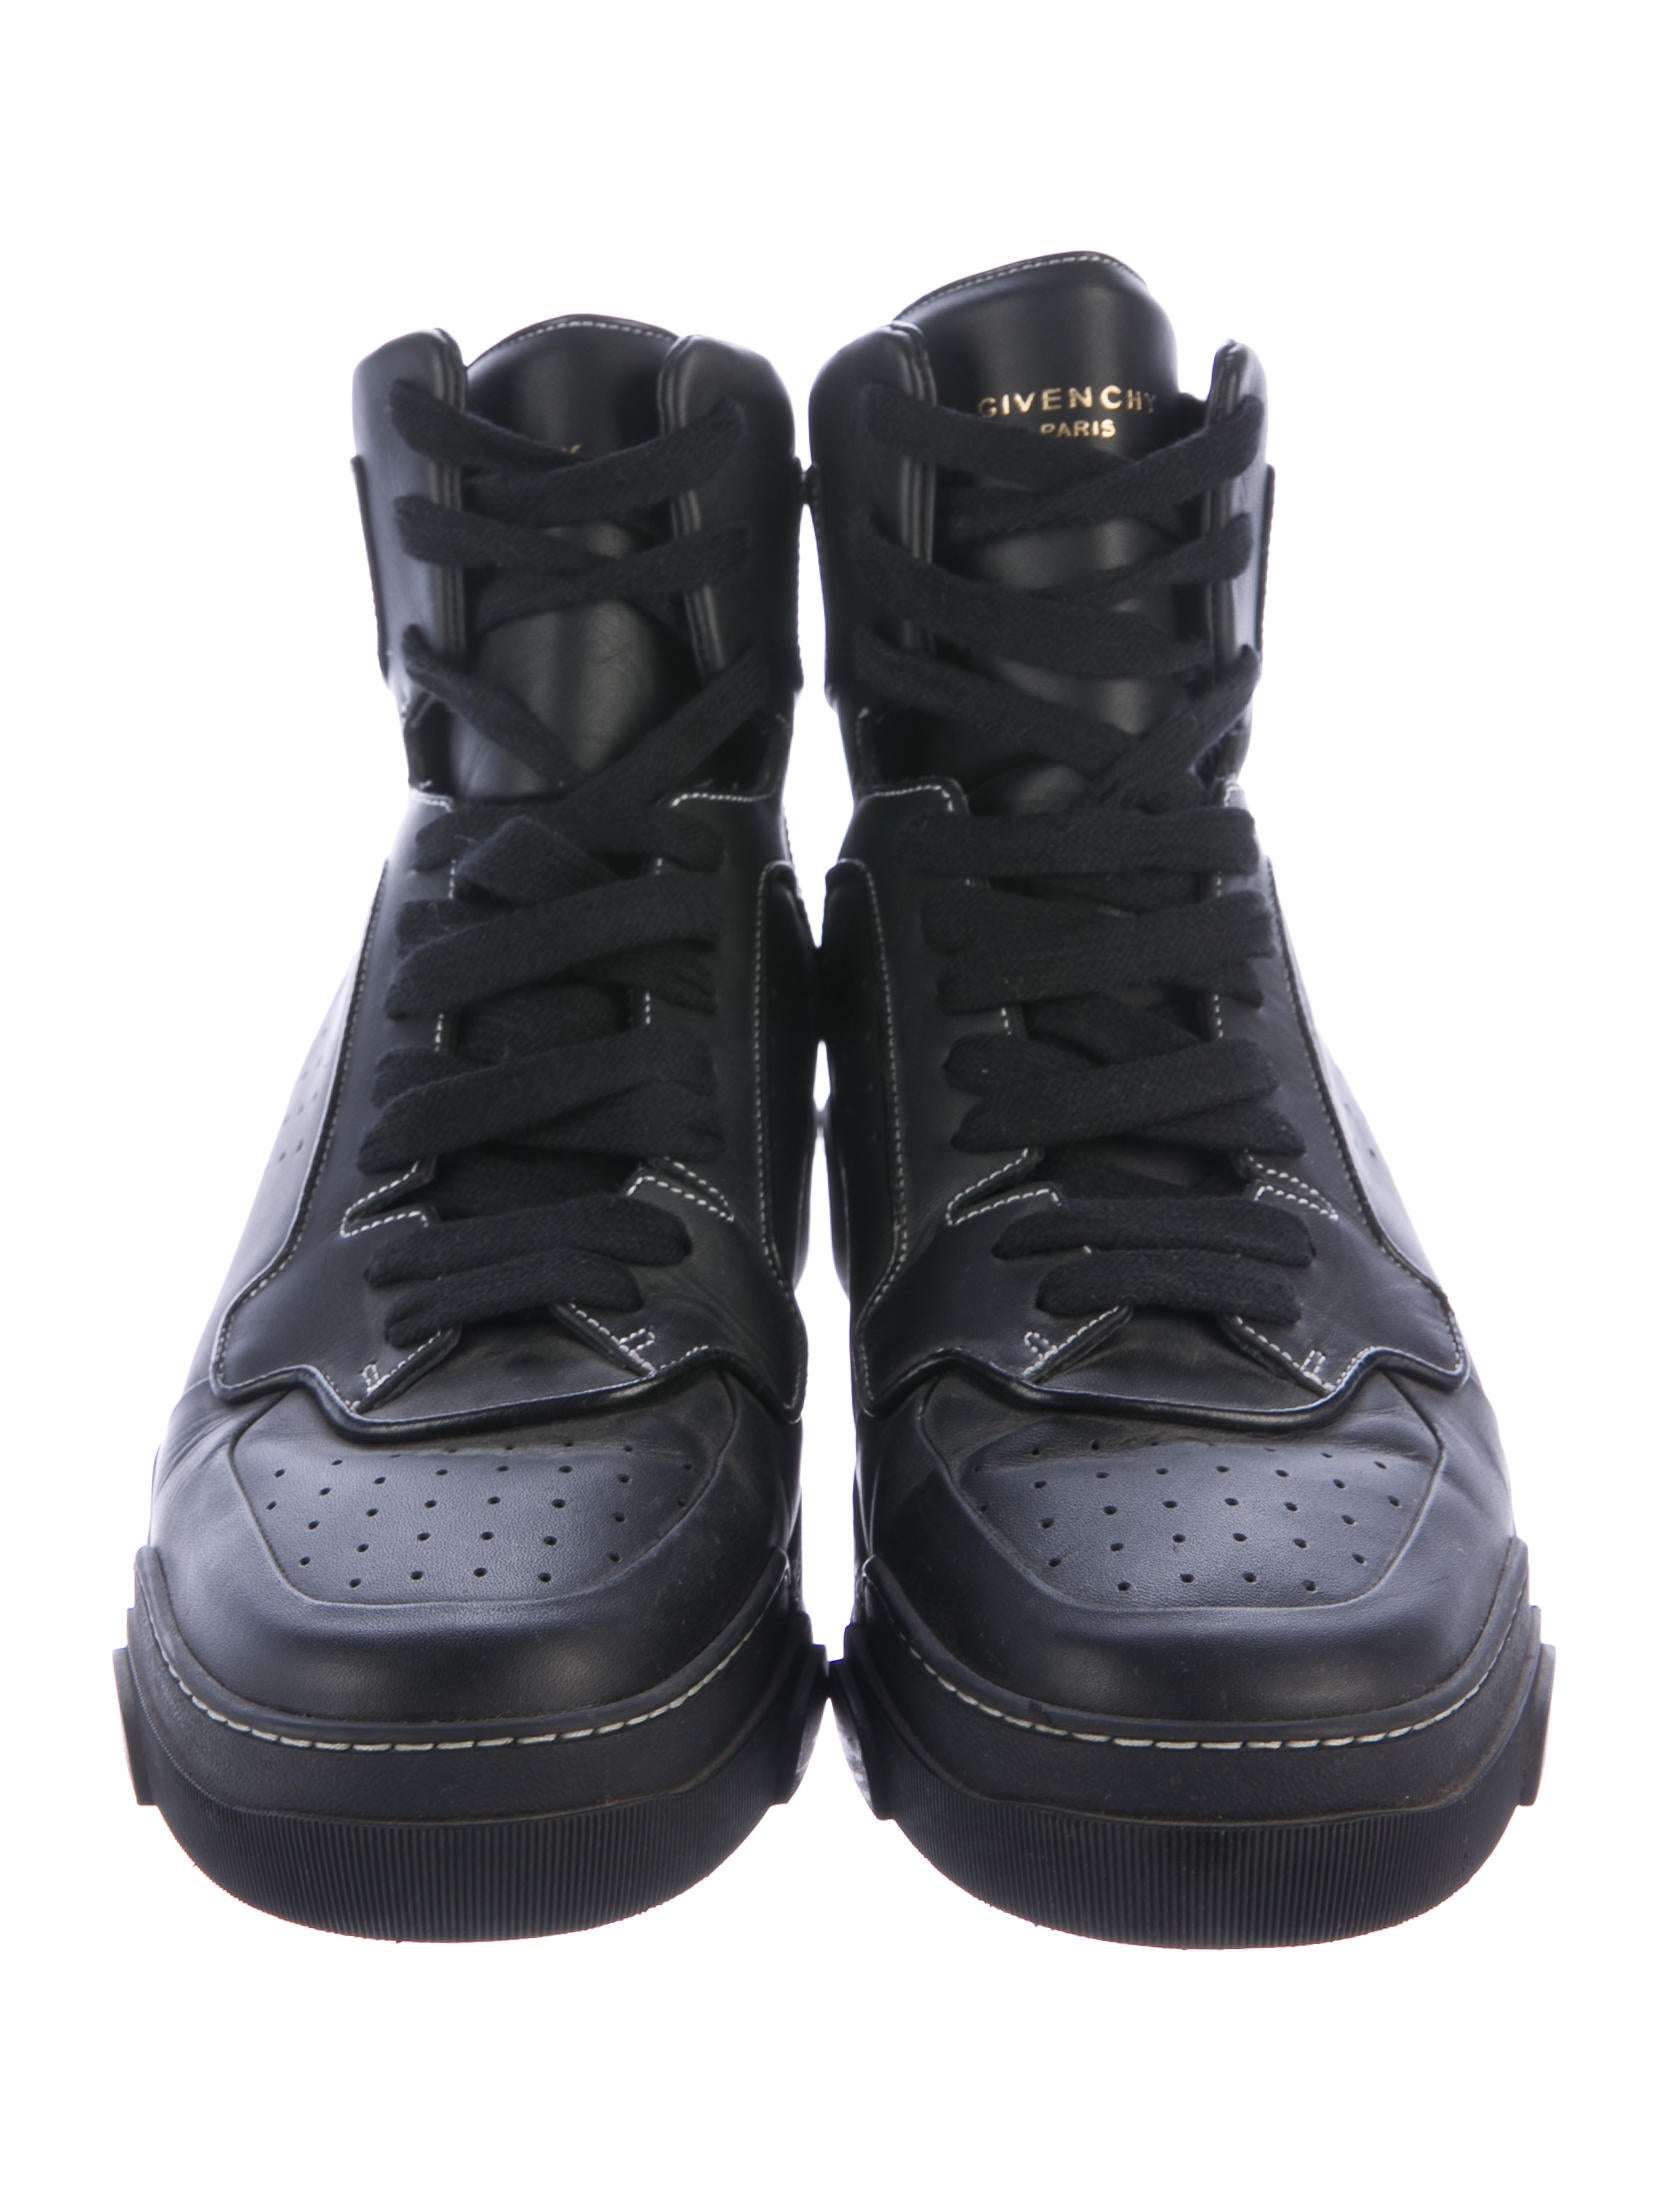 givenchy leather high top sneakers shoes giv41329